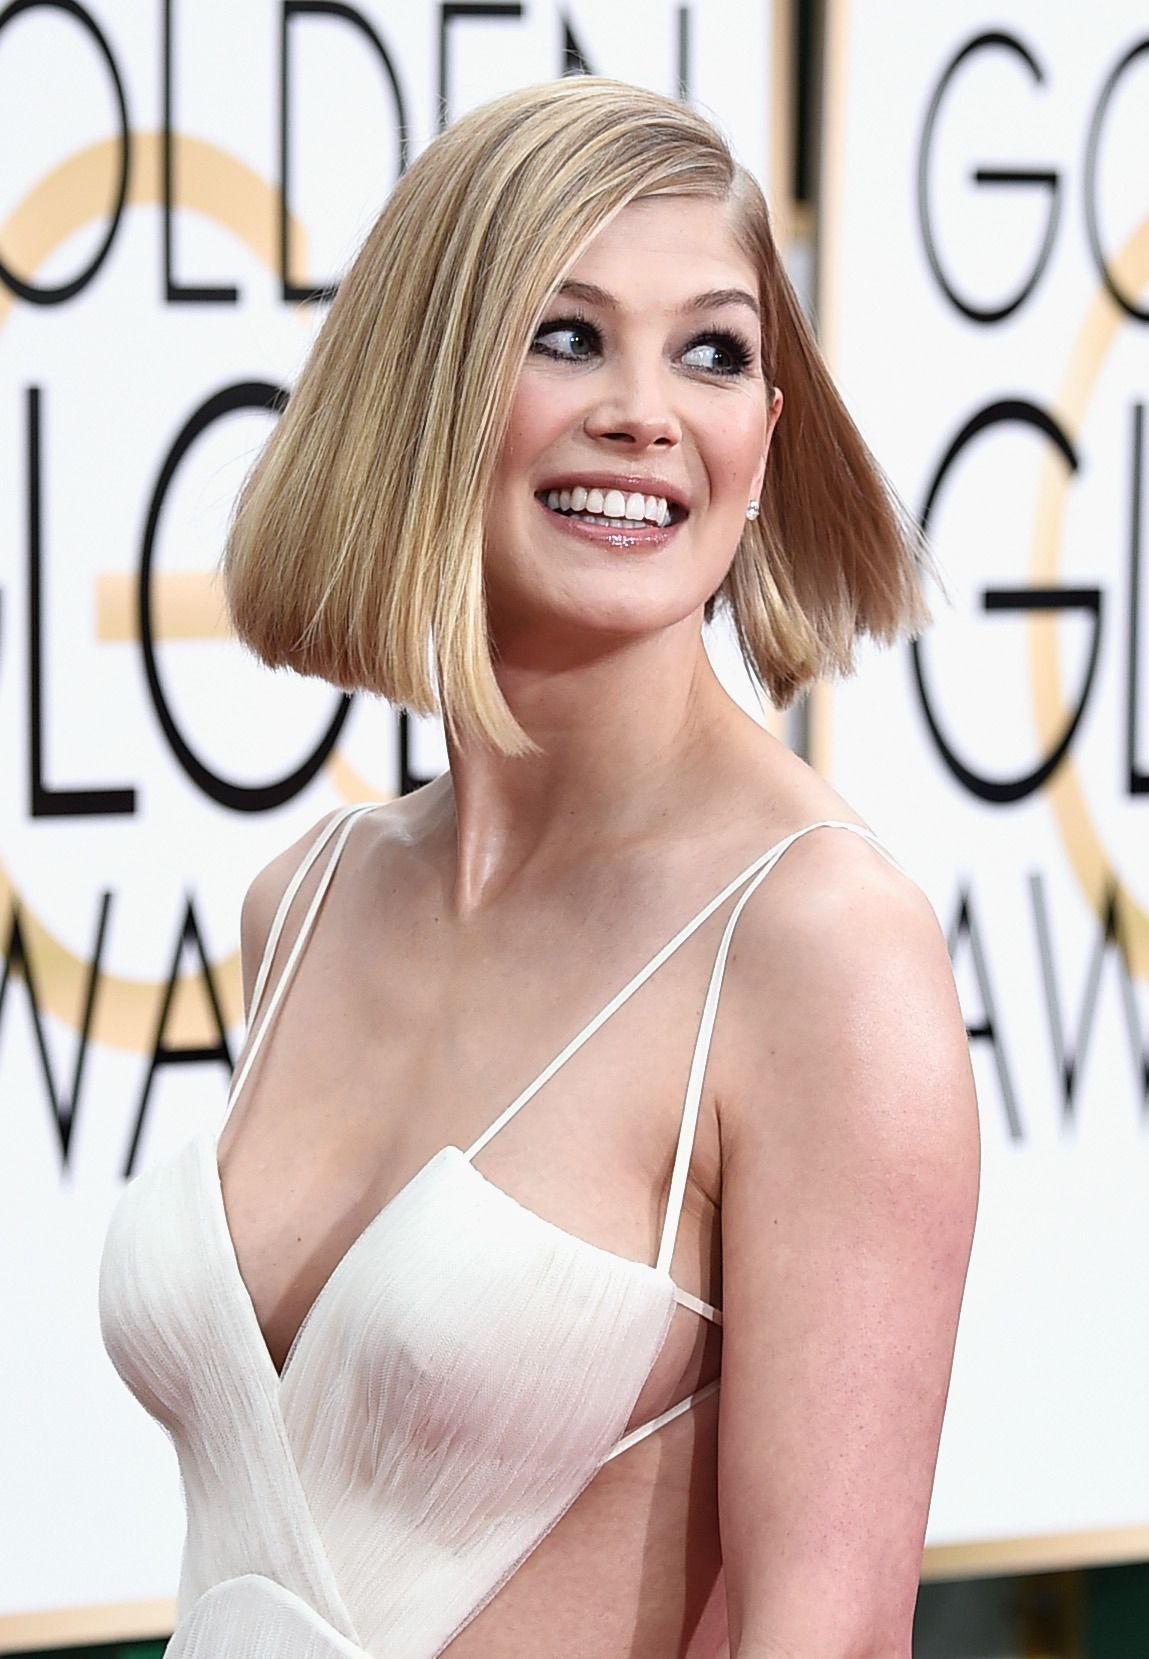 Pussy Cleavage Rosamund Pike naked photo 2017